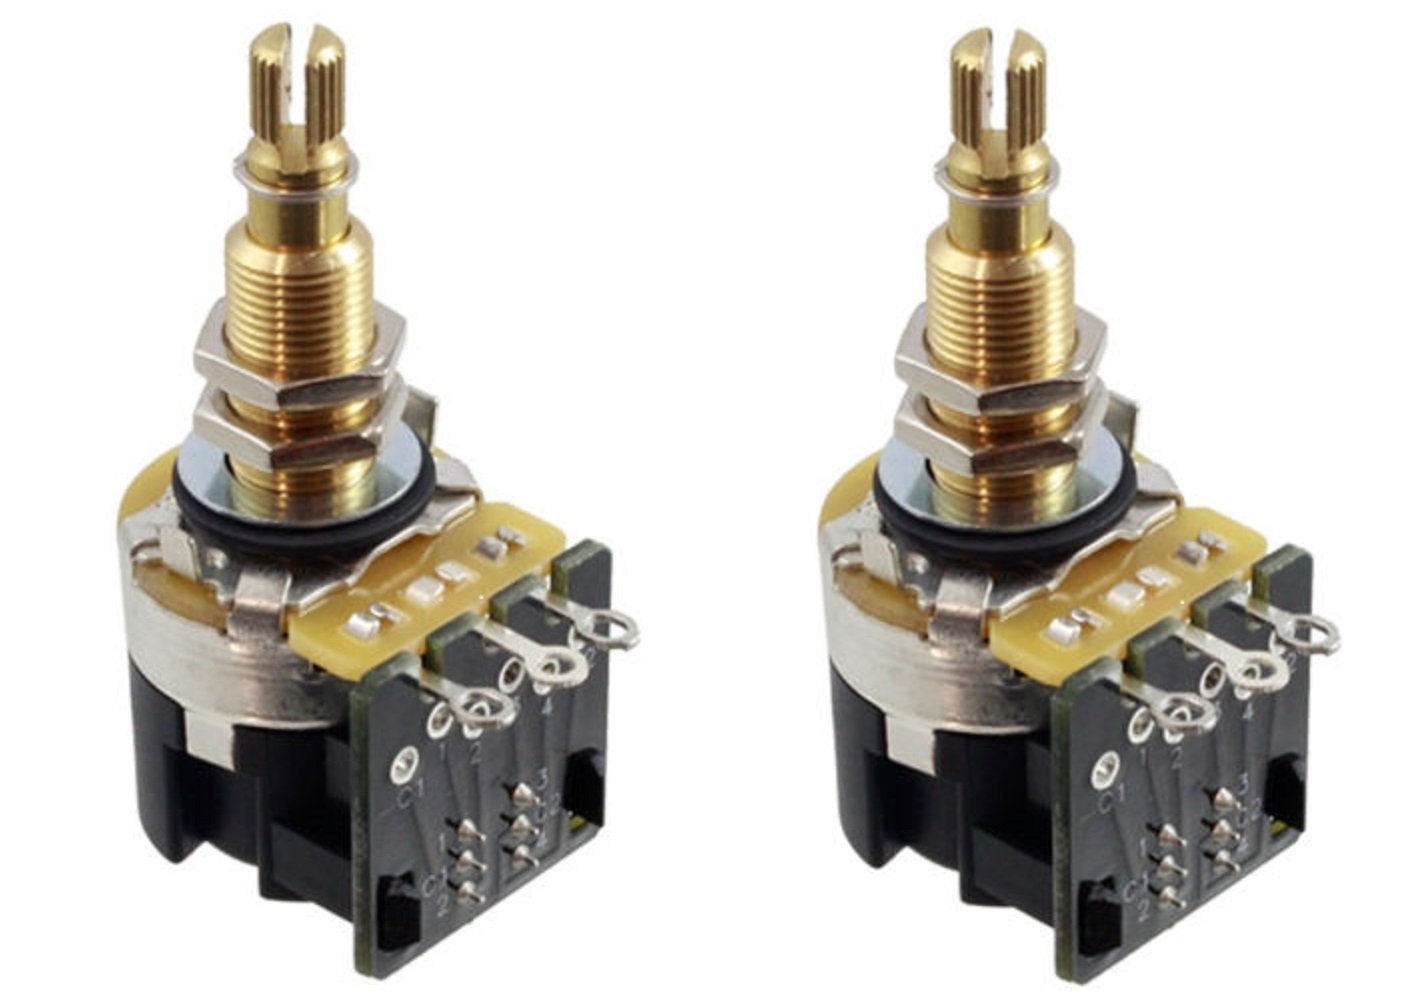 CTS 500K Push Pull Long Shaft Audio Taper Potentiometers - Pair (2X)